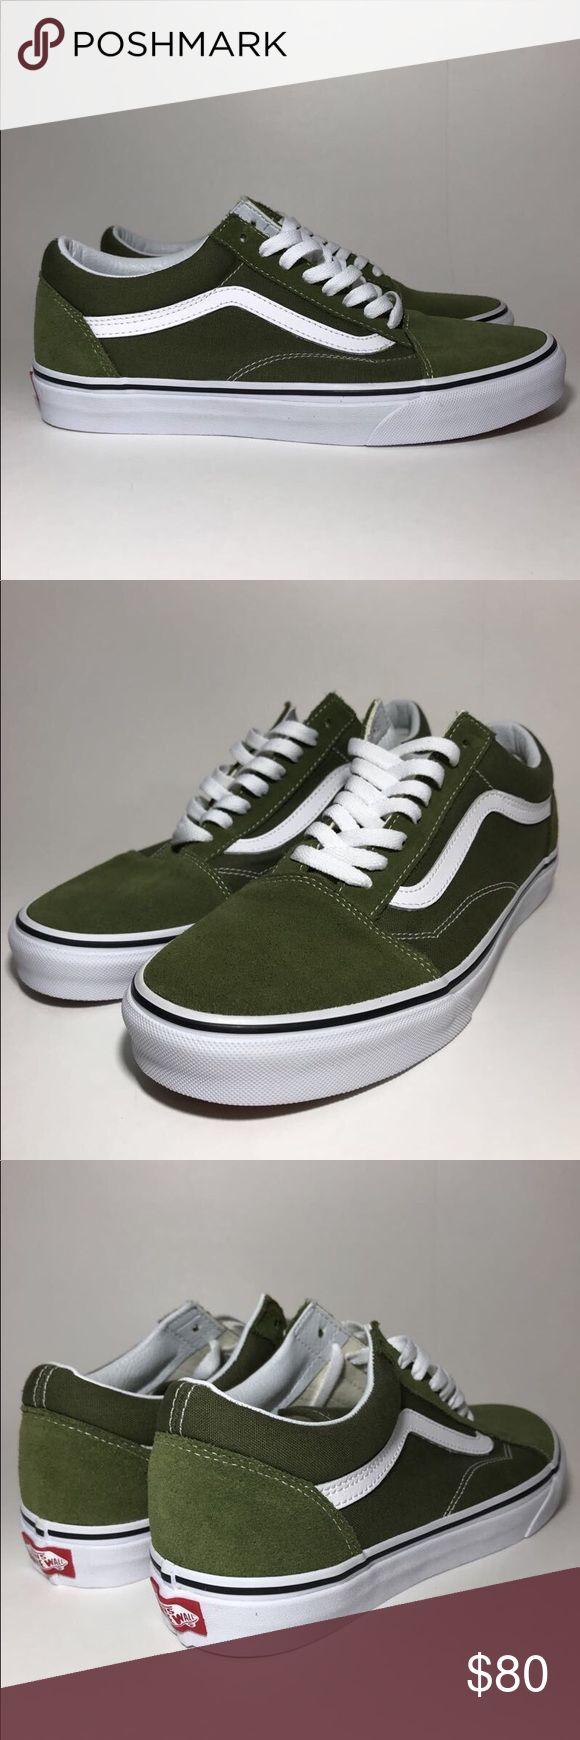 Vans Old Skool Low Brand new olive green low top old skools  Size 9   DM US ON IG FOR A CHEAPER PRICE @unboxdshop Vans Shoes Sneakers